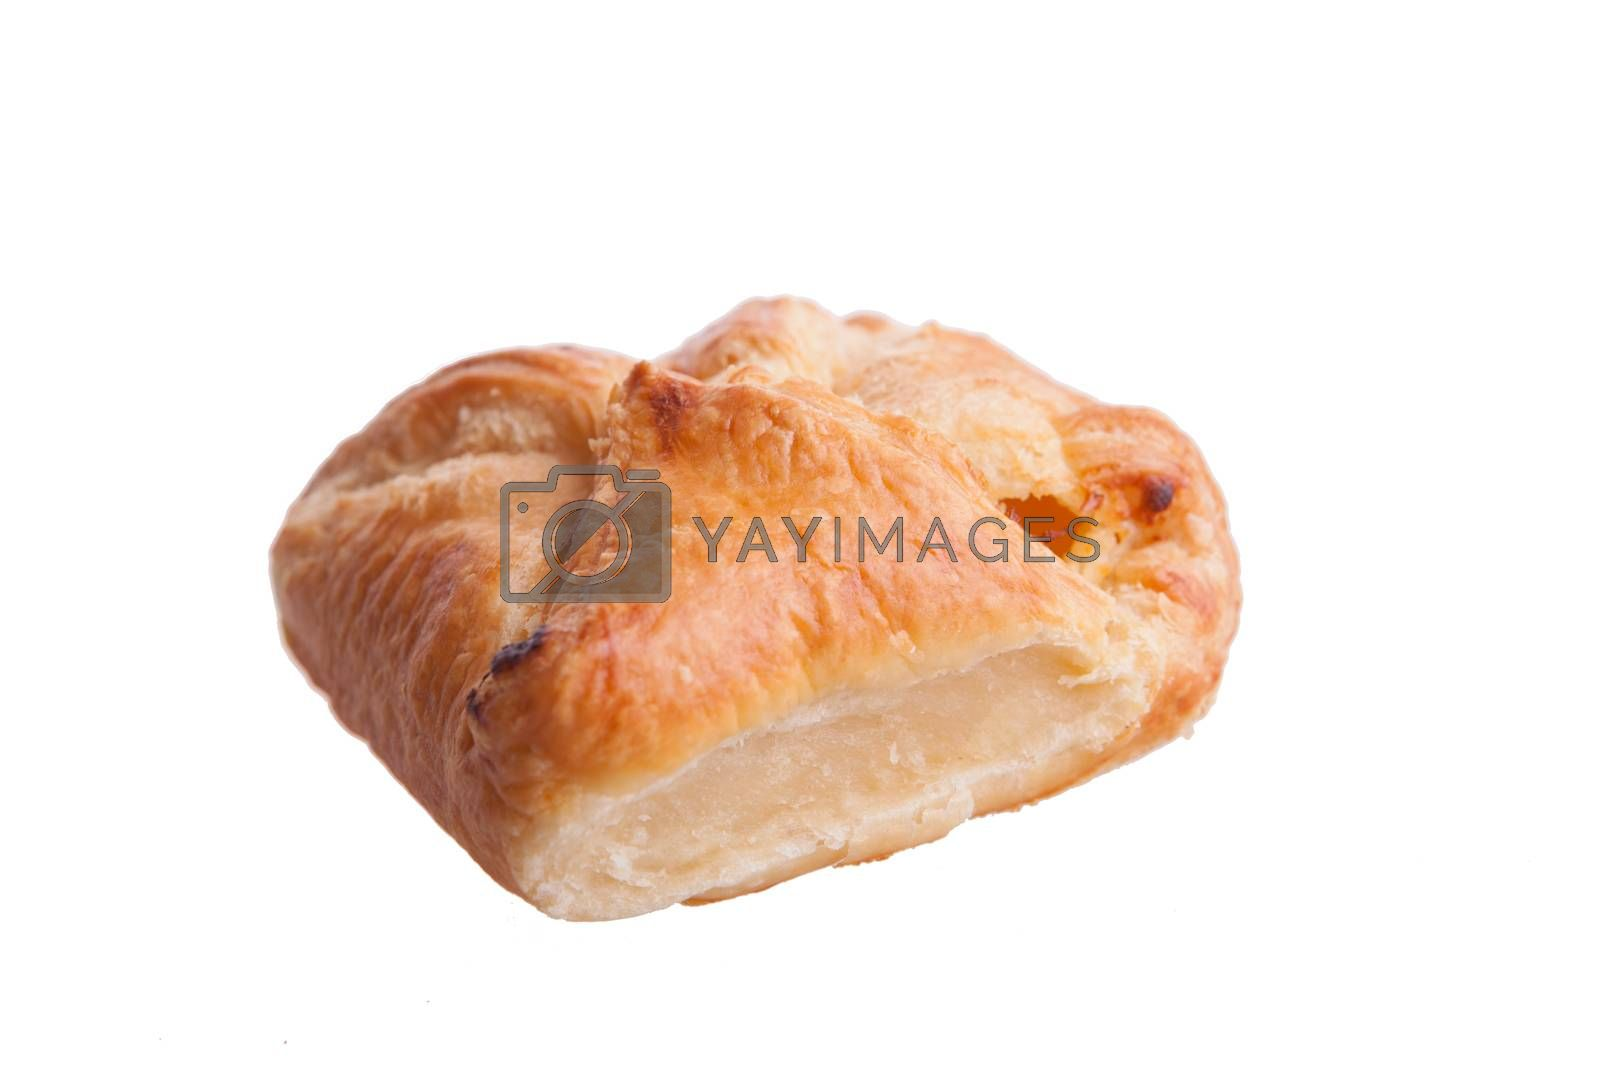 Stuffed chees pie isolated on white background by DCStudio